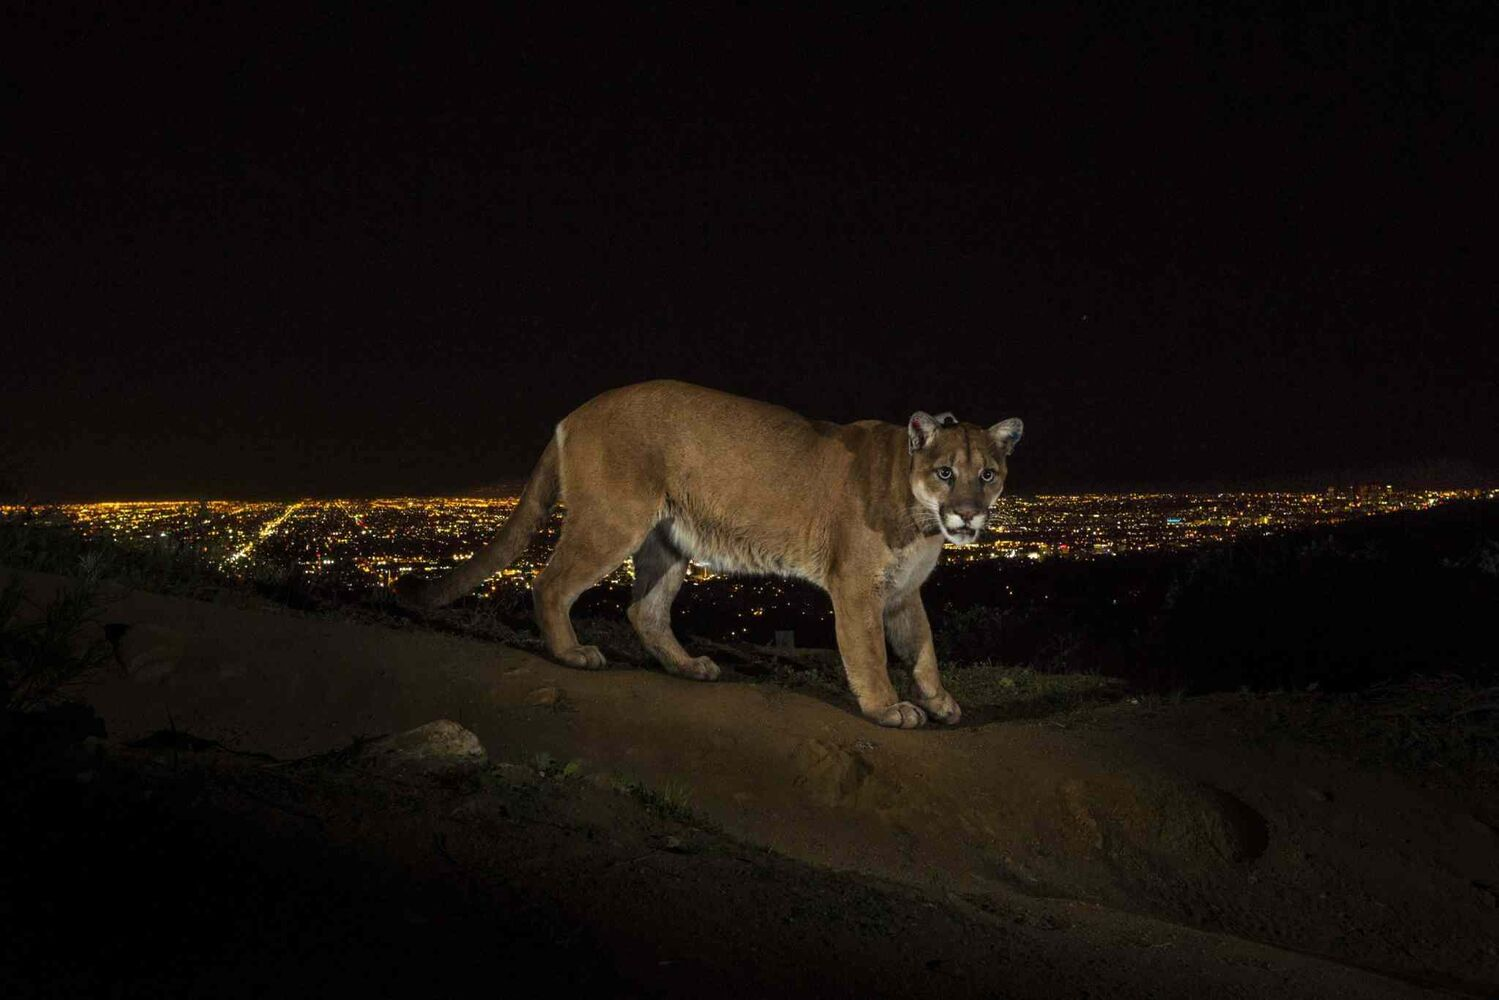 First prize in the Nature Stories category by Steve Winter of U.S.A.<p> A cougar walks a trail in Los Angeles' Griffith Park, captured by a camera trap on March 2, 2013. To reach the park, which has been the cougar's home for the last two years, it had to cross two of the busiest highways in the U.S.